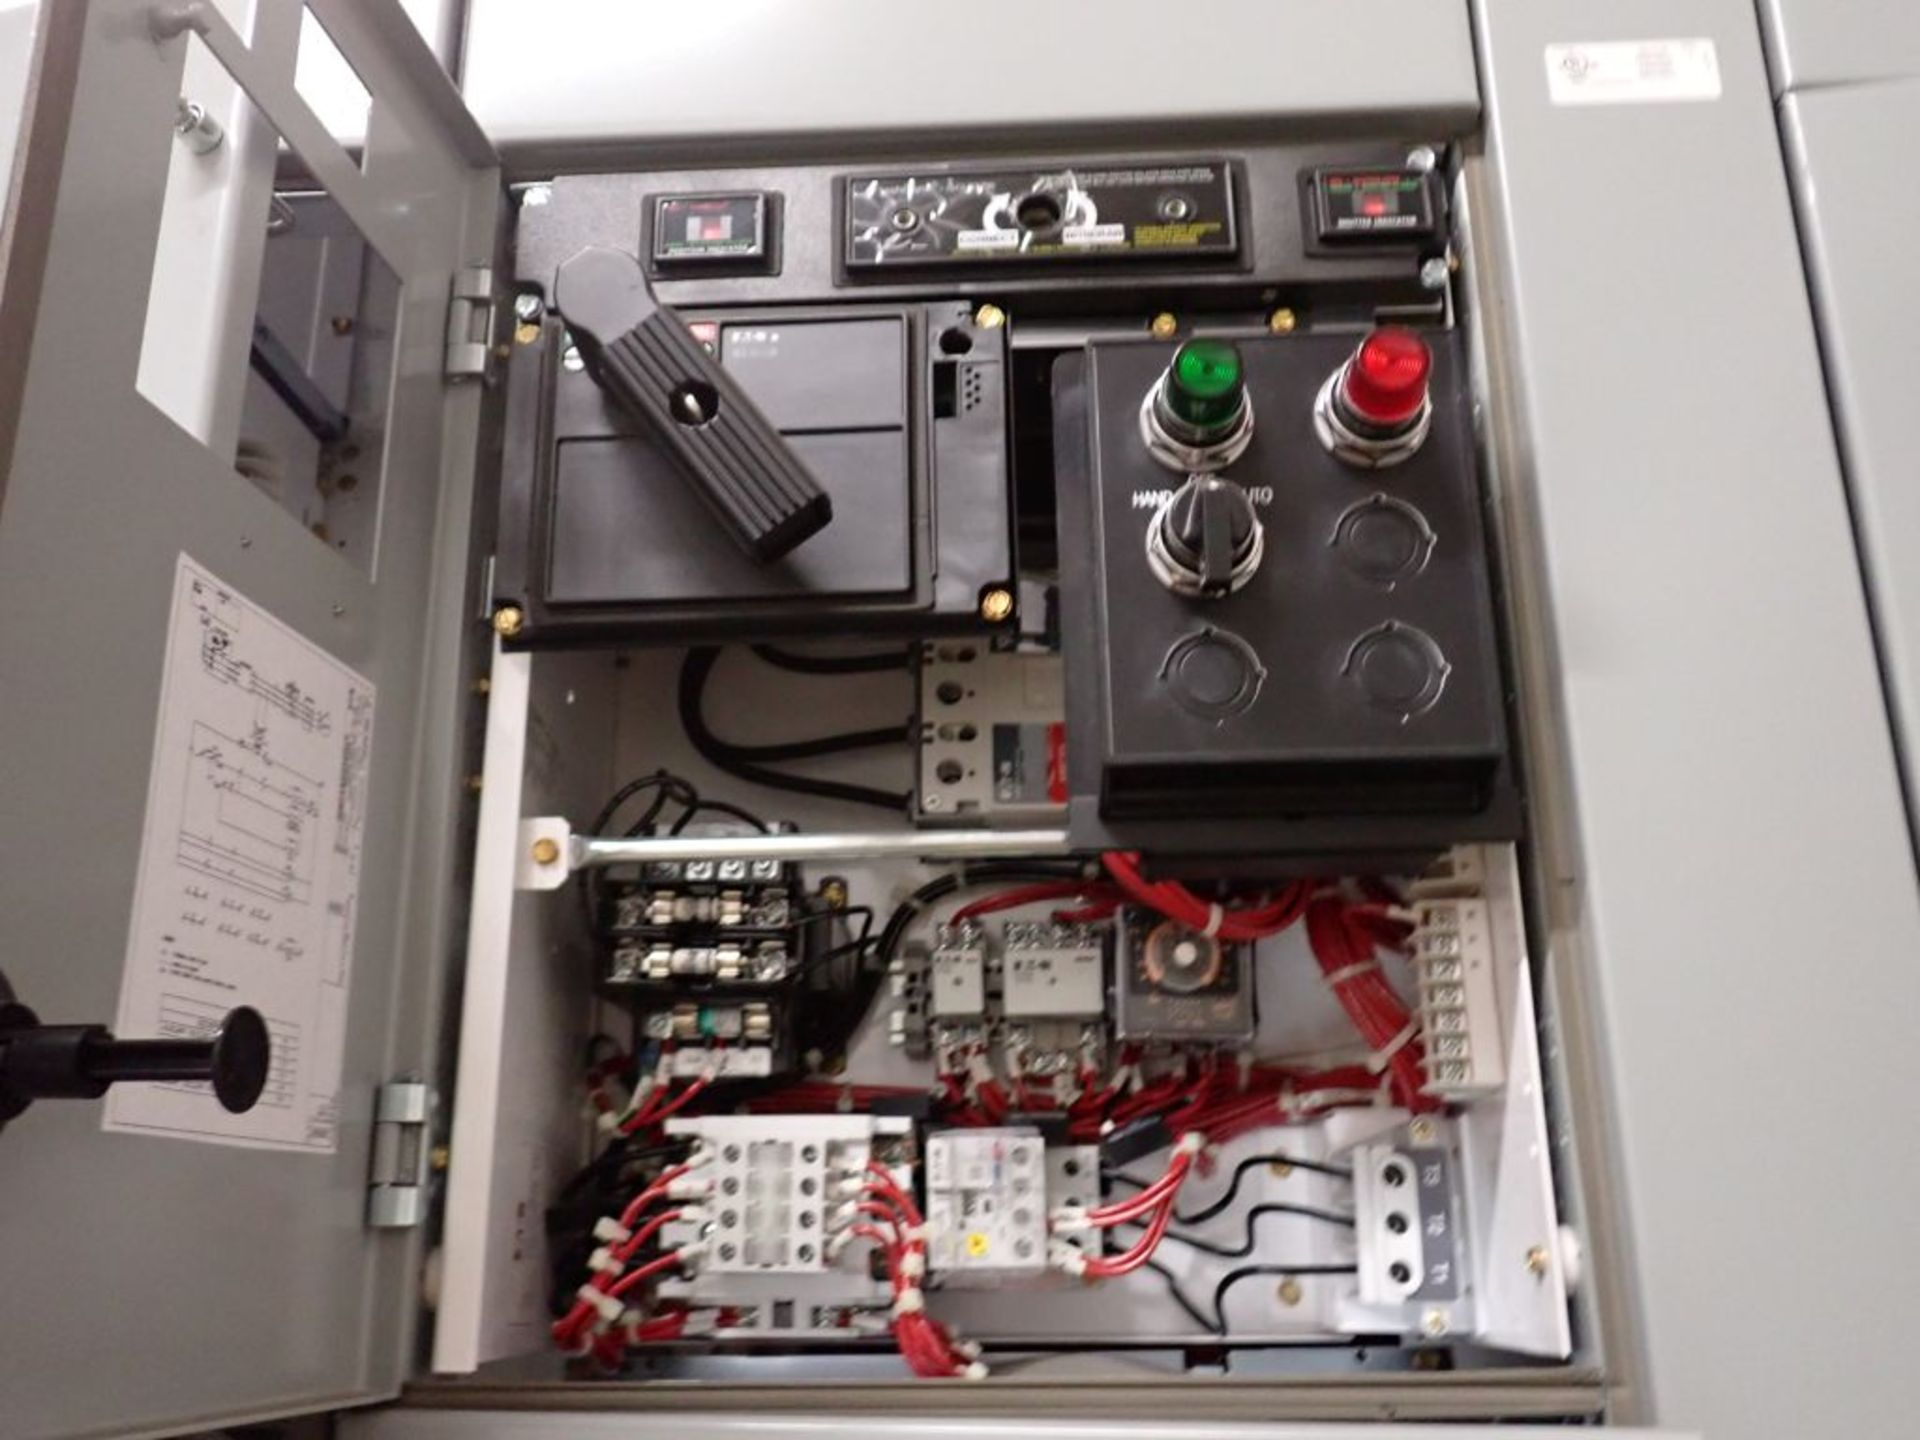 Eaton Freedom 2100 Series Motor Control Center | (11) F206-30A-10HP; (5) F206-15A-10HP; (1) SVX900- - Image 57 of 102